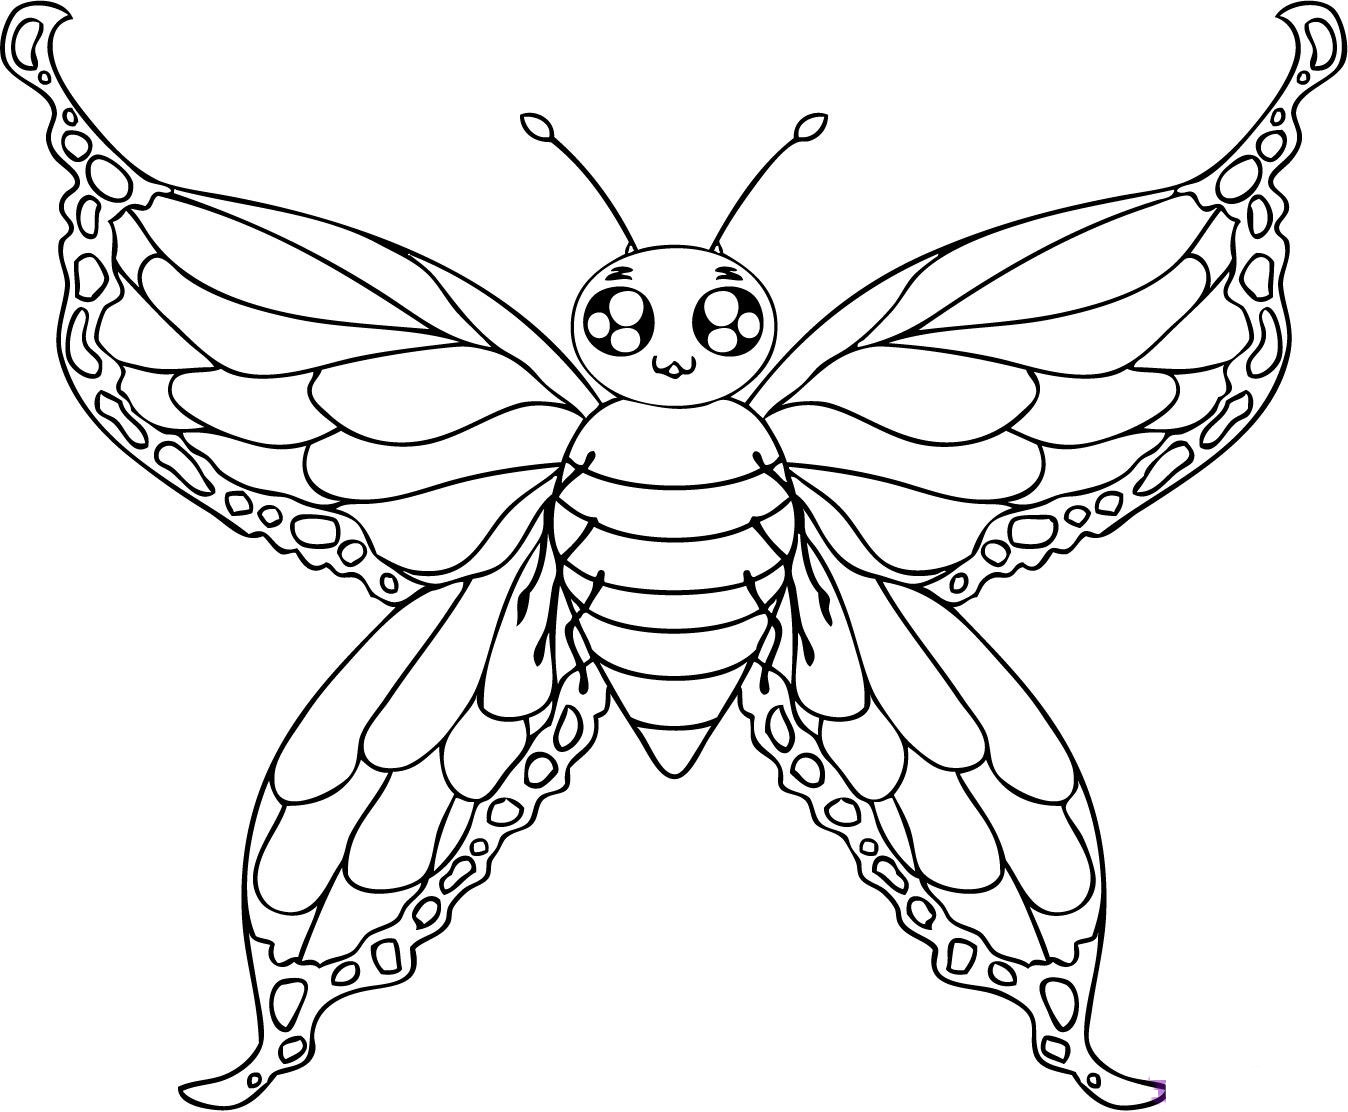 printable butterfly coloring sheets monarch butterfly coloring pages to print free coloring coloring butterfly printable sheets 1 1